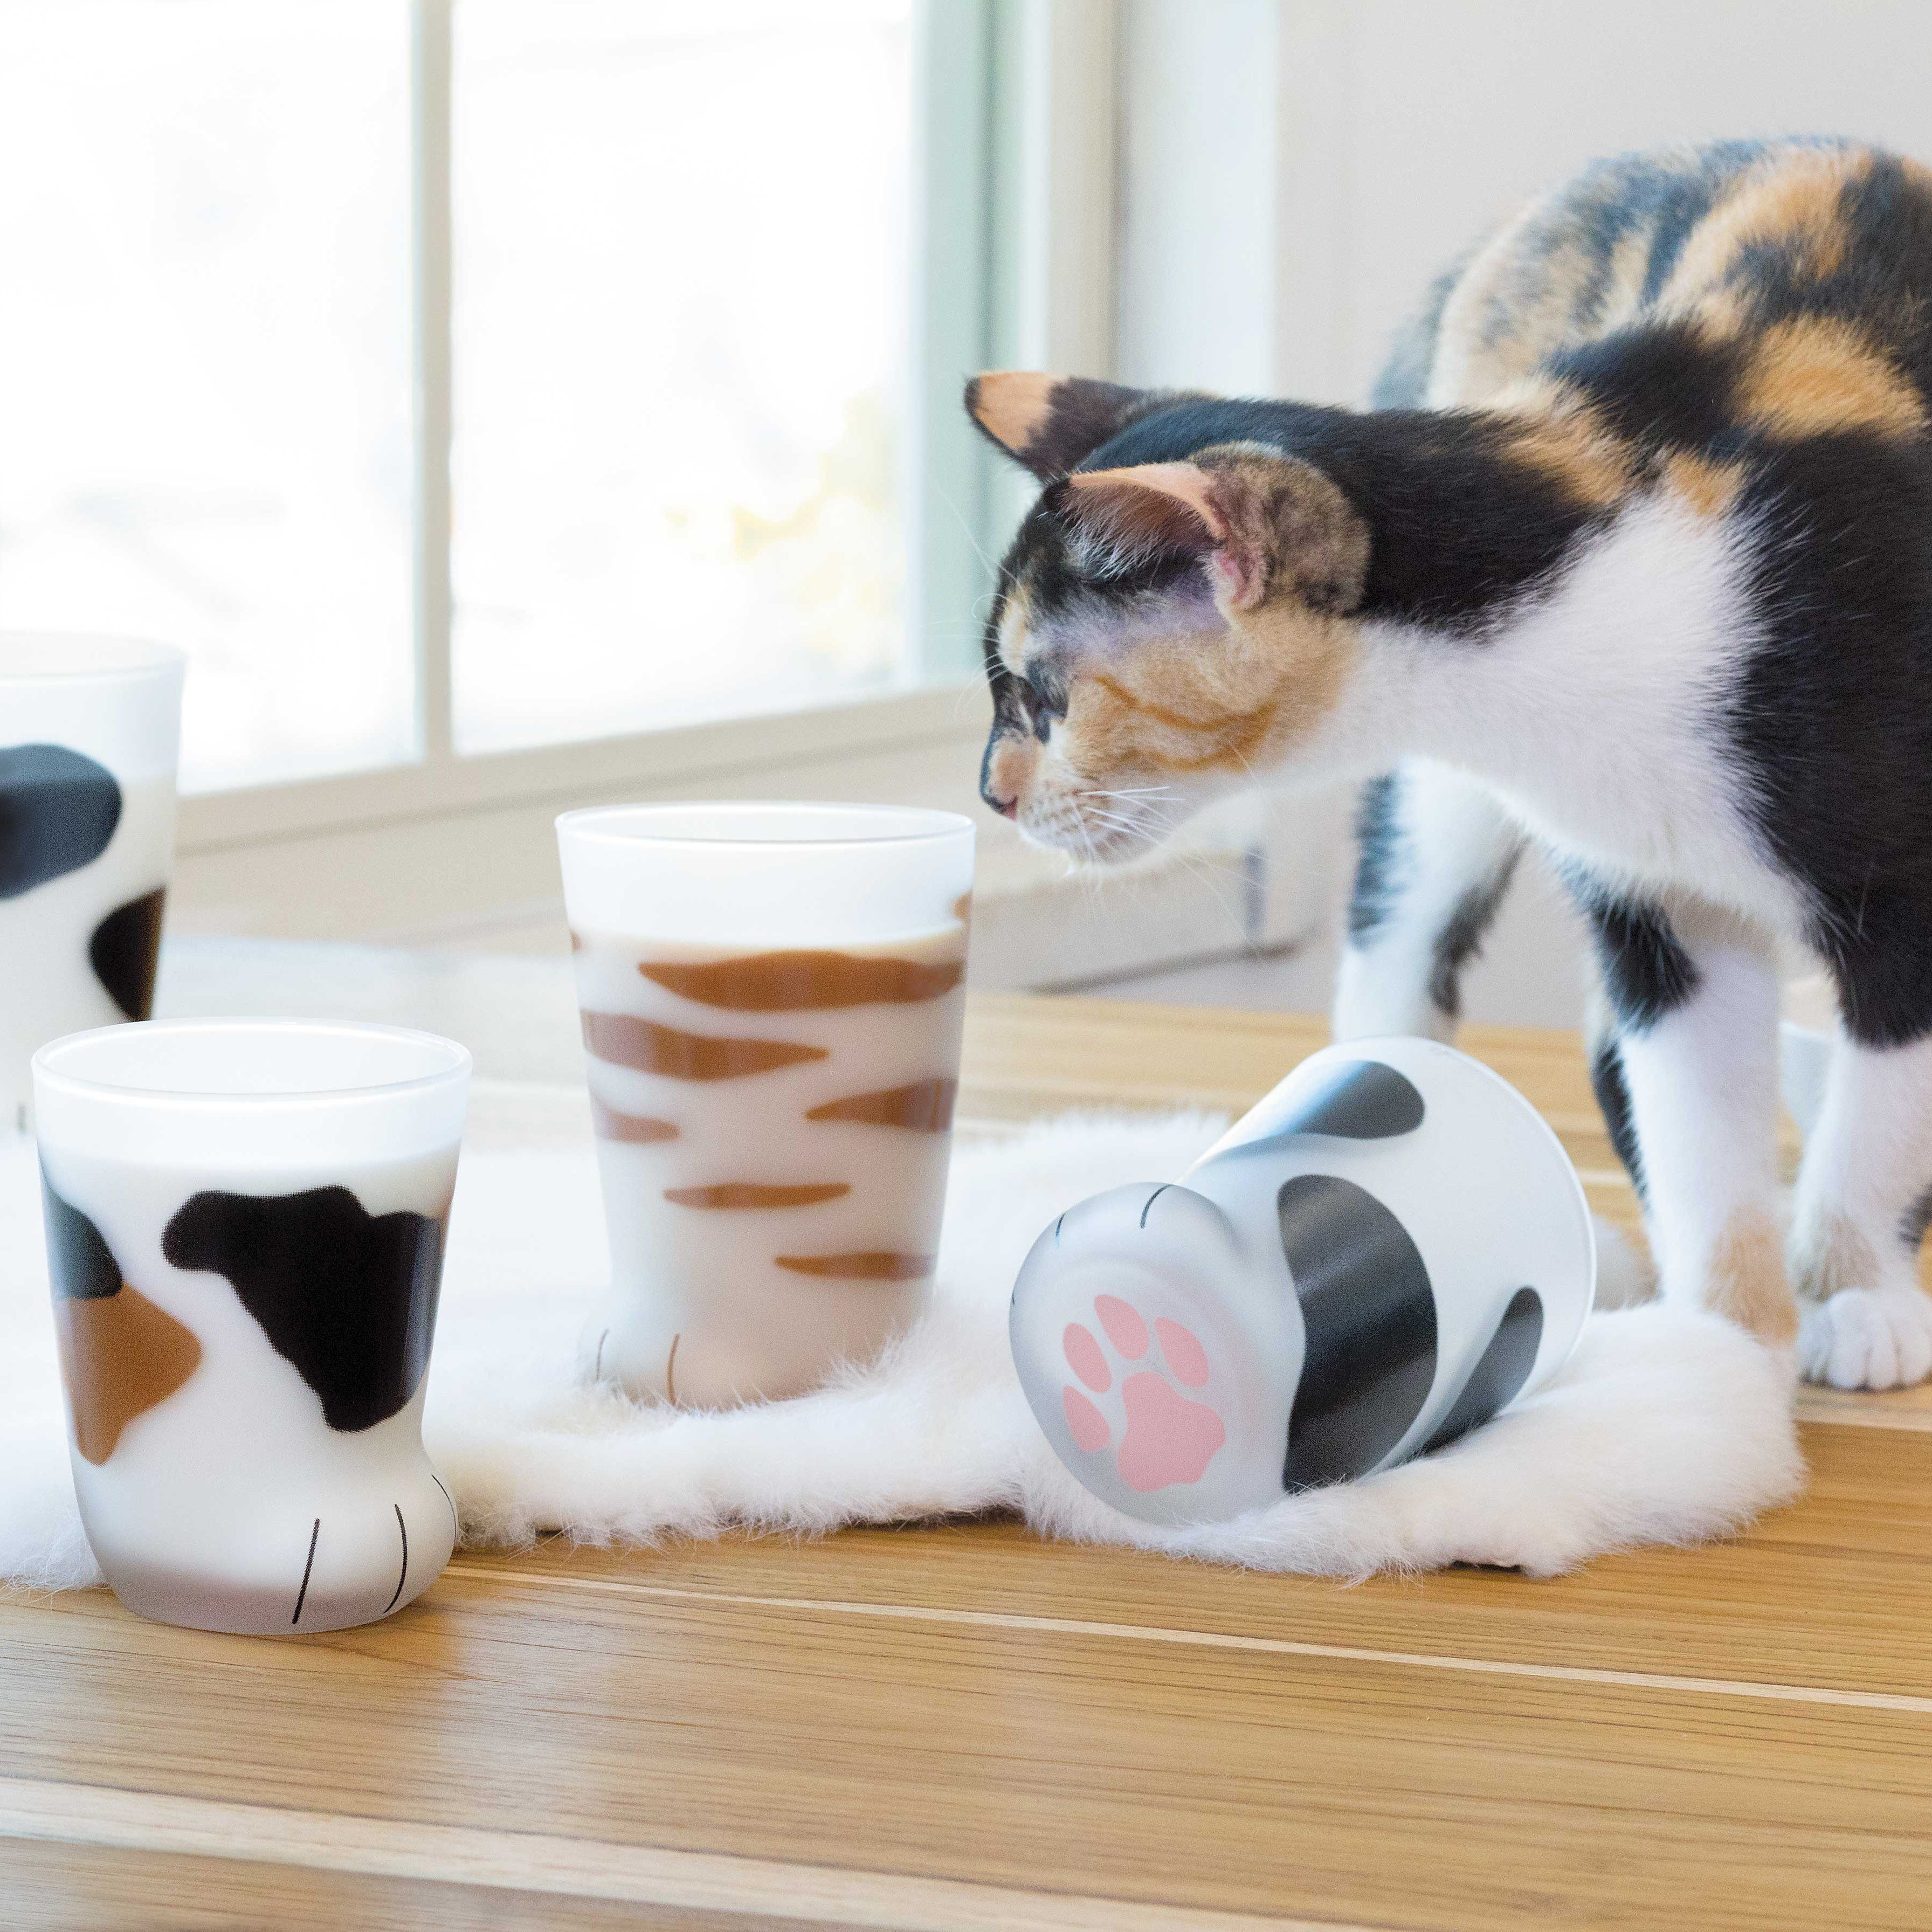 Cat Paw Cup Cat Paws Like A Cat Cats